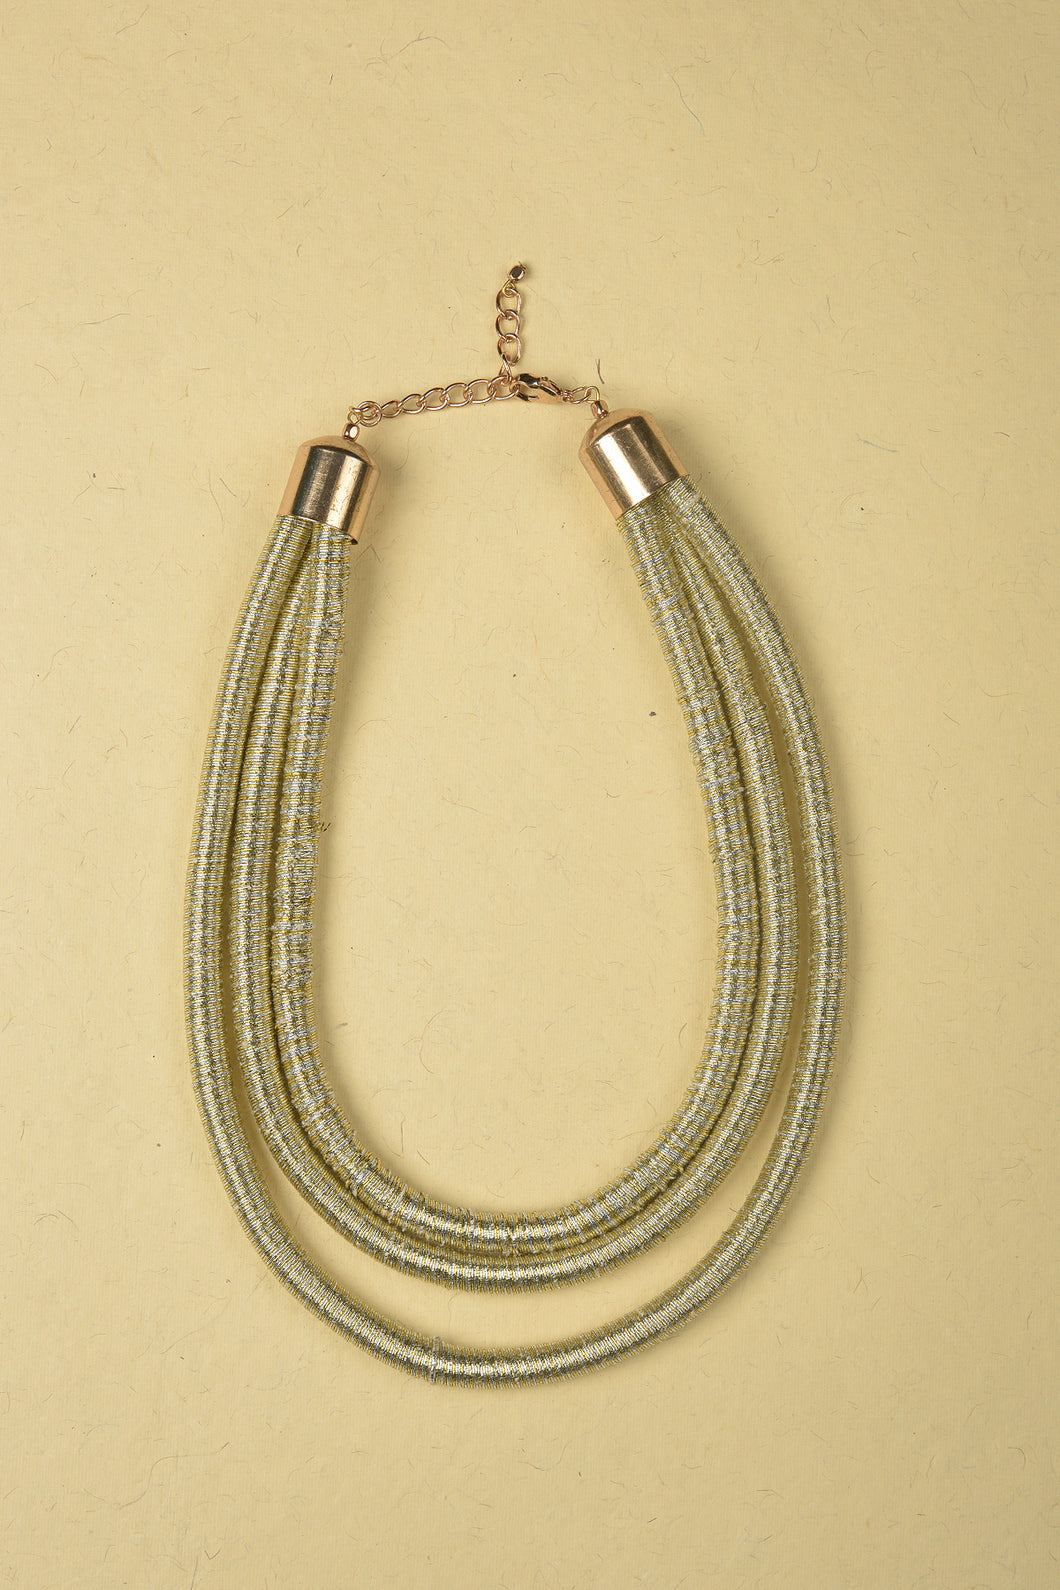 Small Necklace made of Jute, Iron Rings and Iron Chain